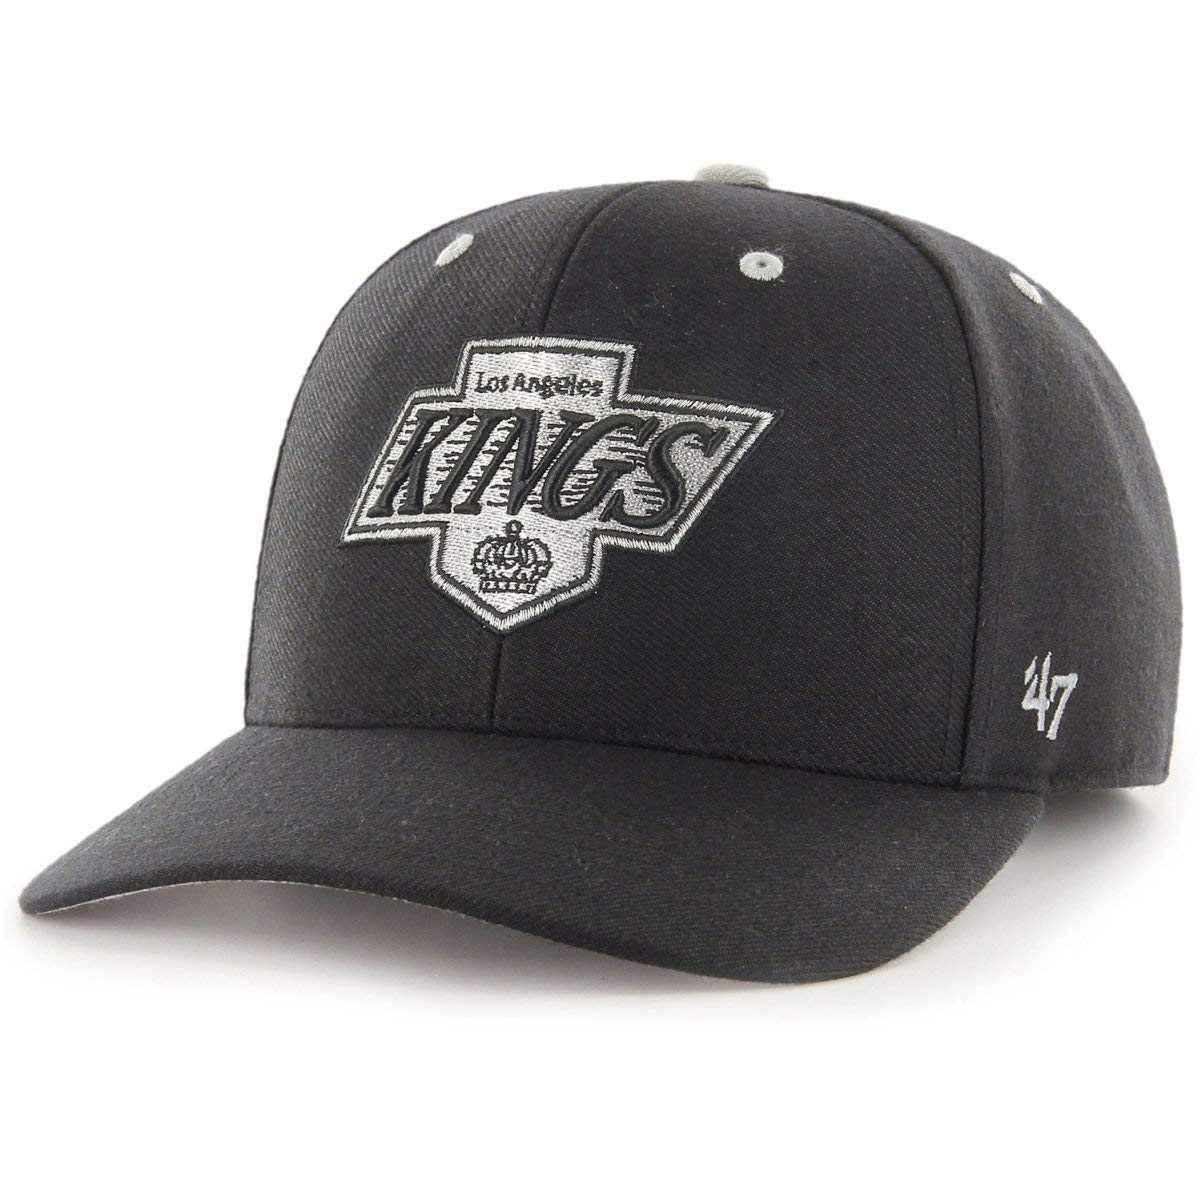 47 Gorra Ajustable Marca Audible Los Angeles Kings Color Negro ...